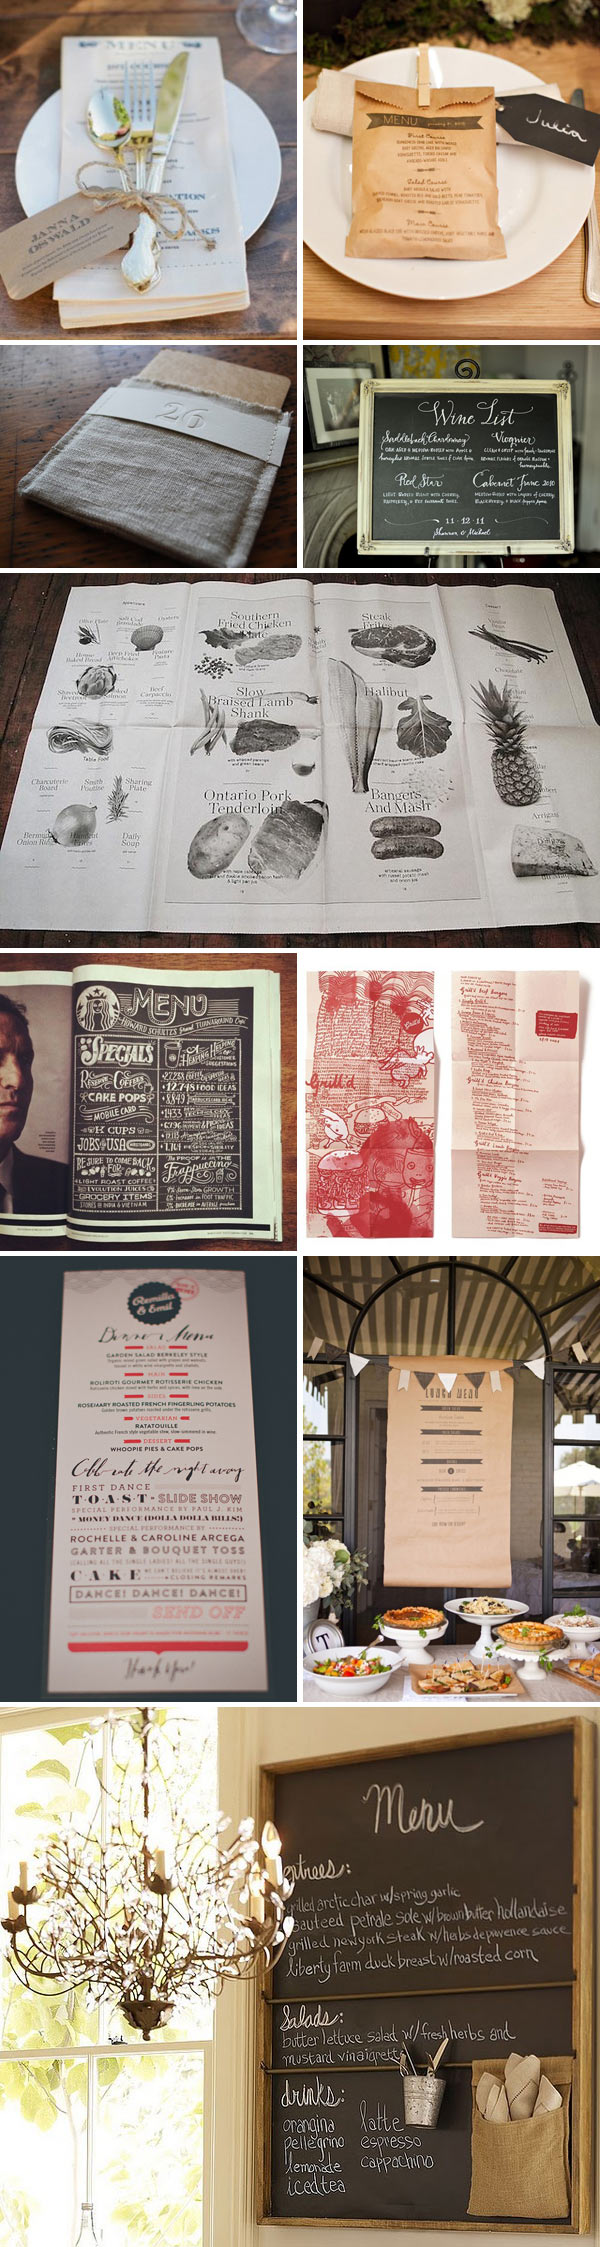 Menu Moodboard 1 Good Enough To Eat.